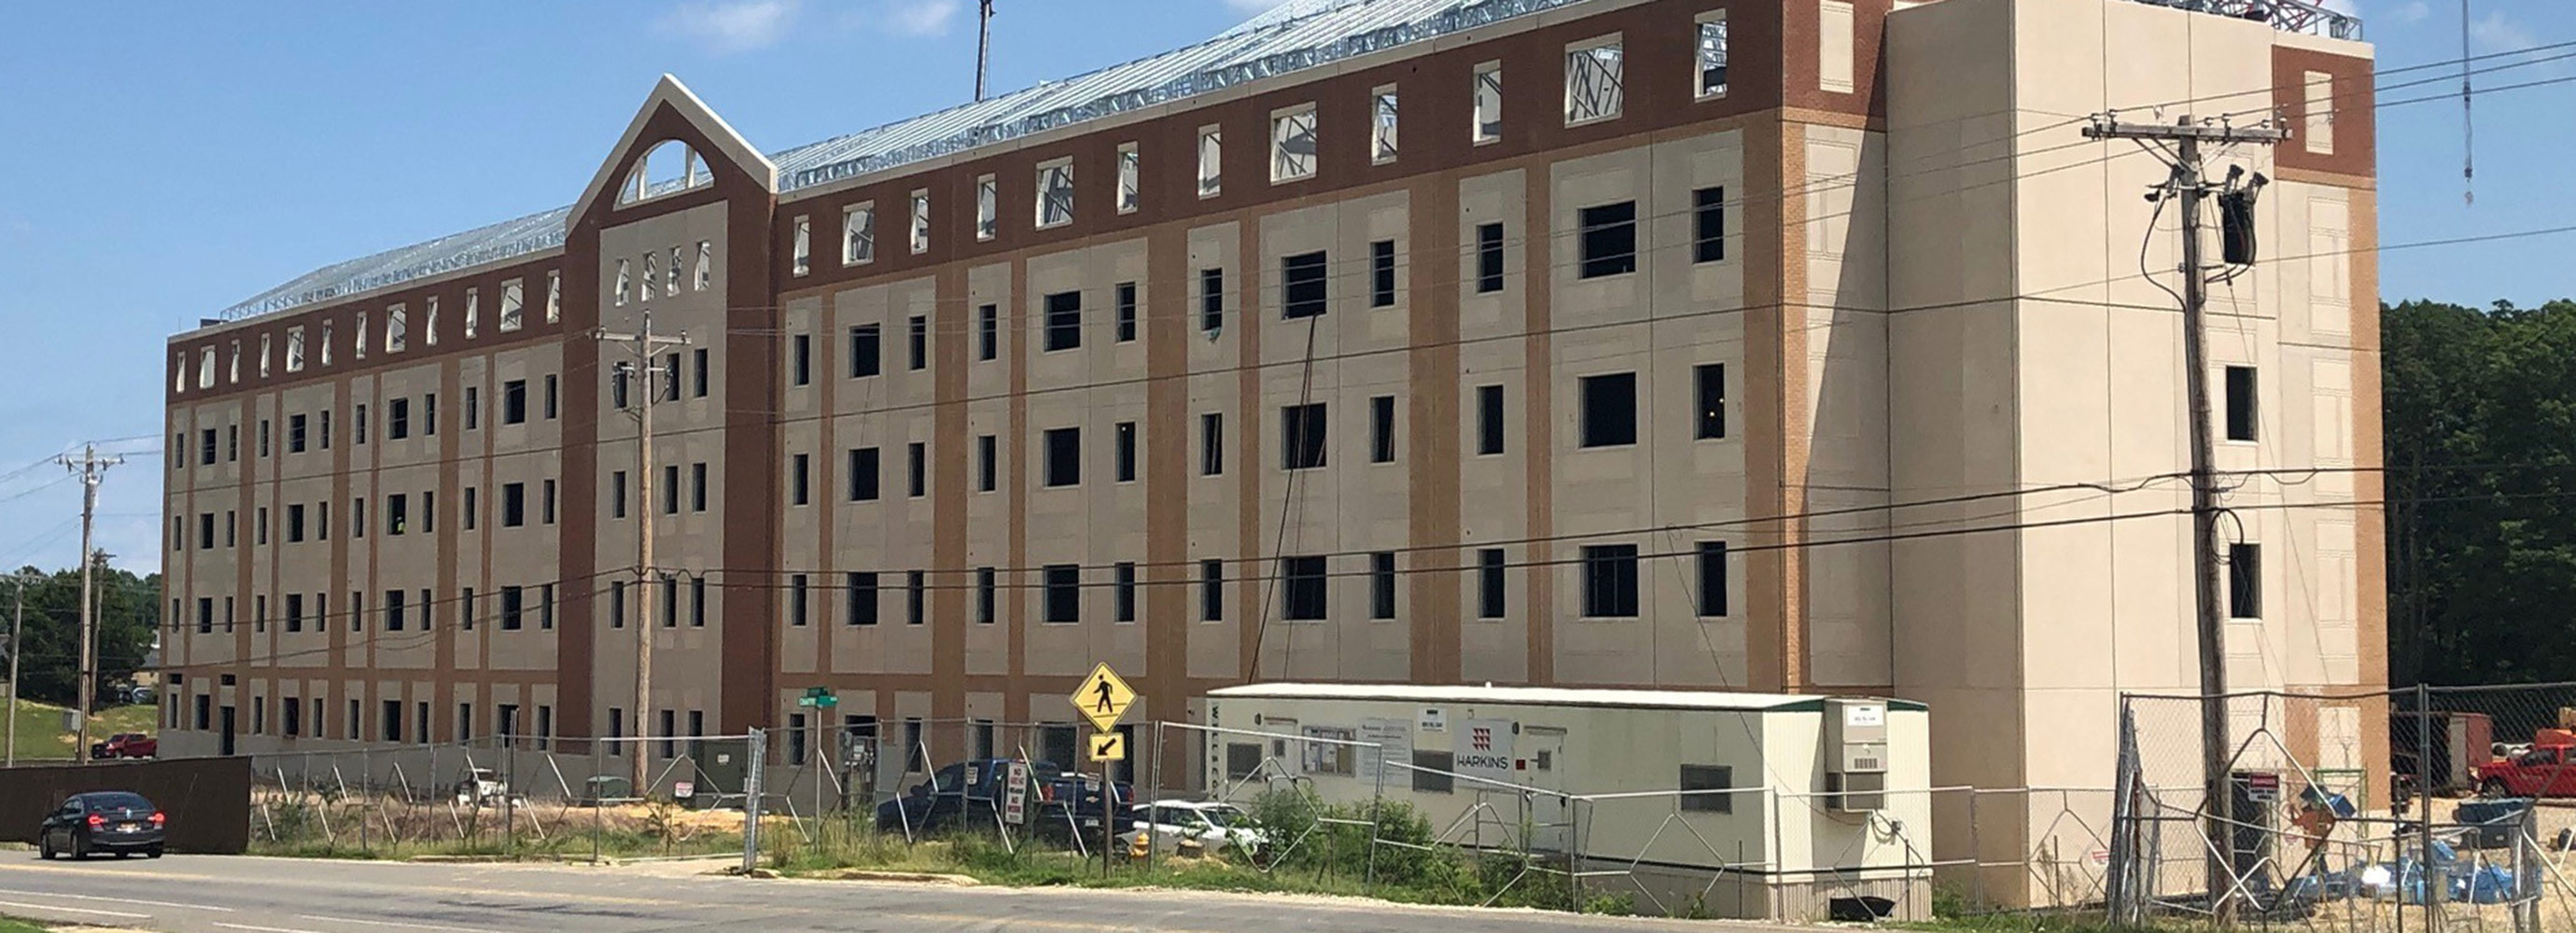 Construction Topping Out of Naval Air Force Facility